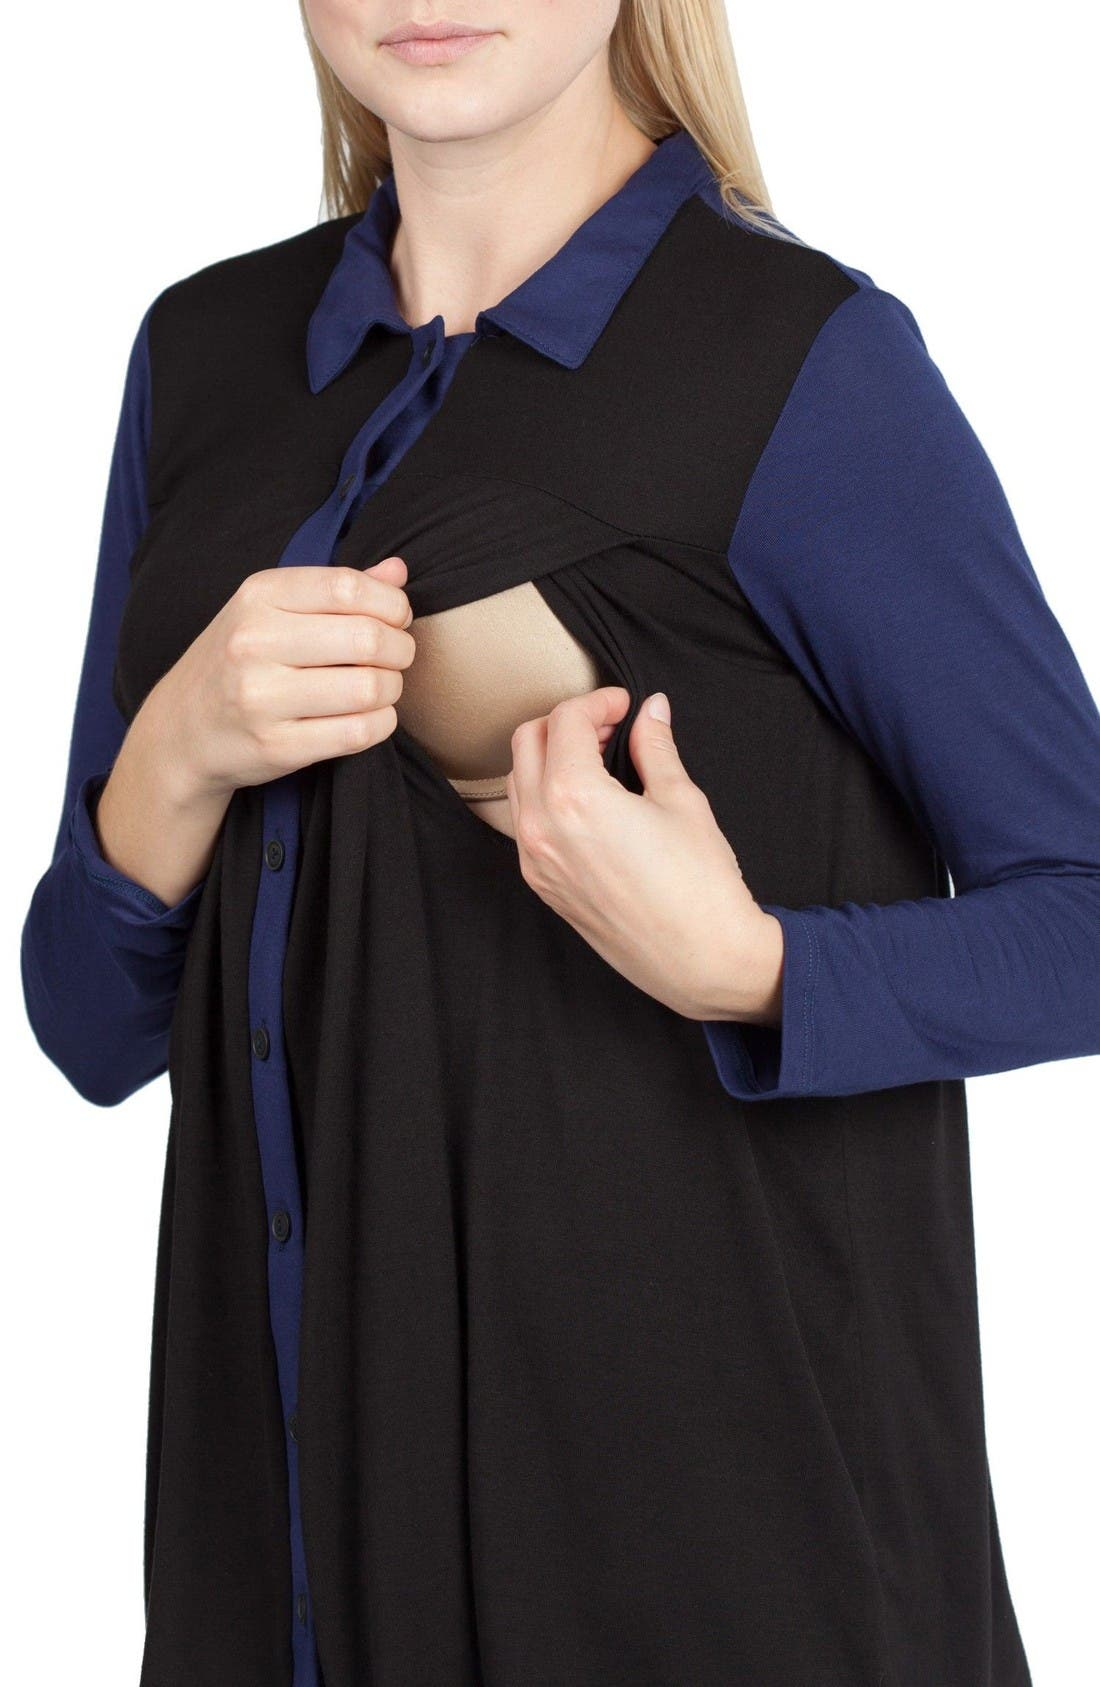 Berlin Maternity/Nursing Tunic Top,                             Alternate thumbnail 5, color,                             Black/ Navy Contrast